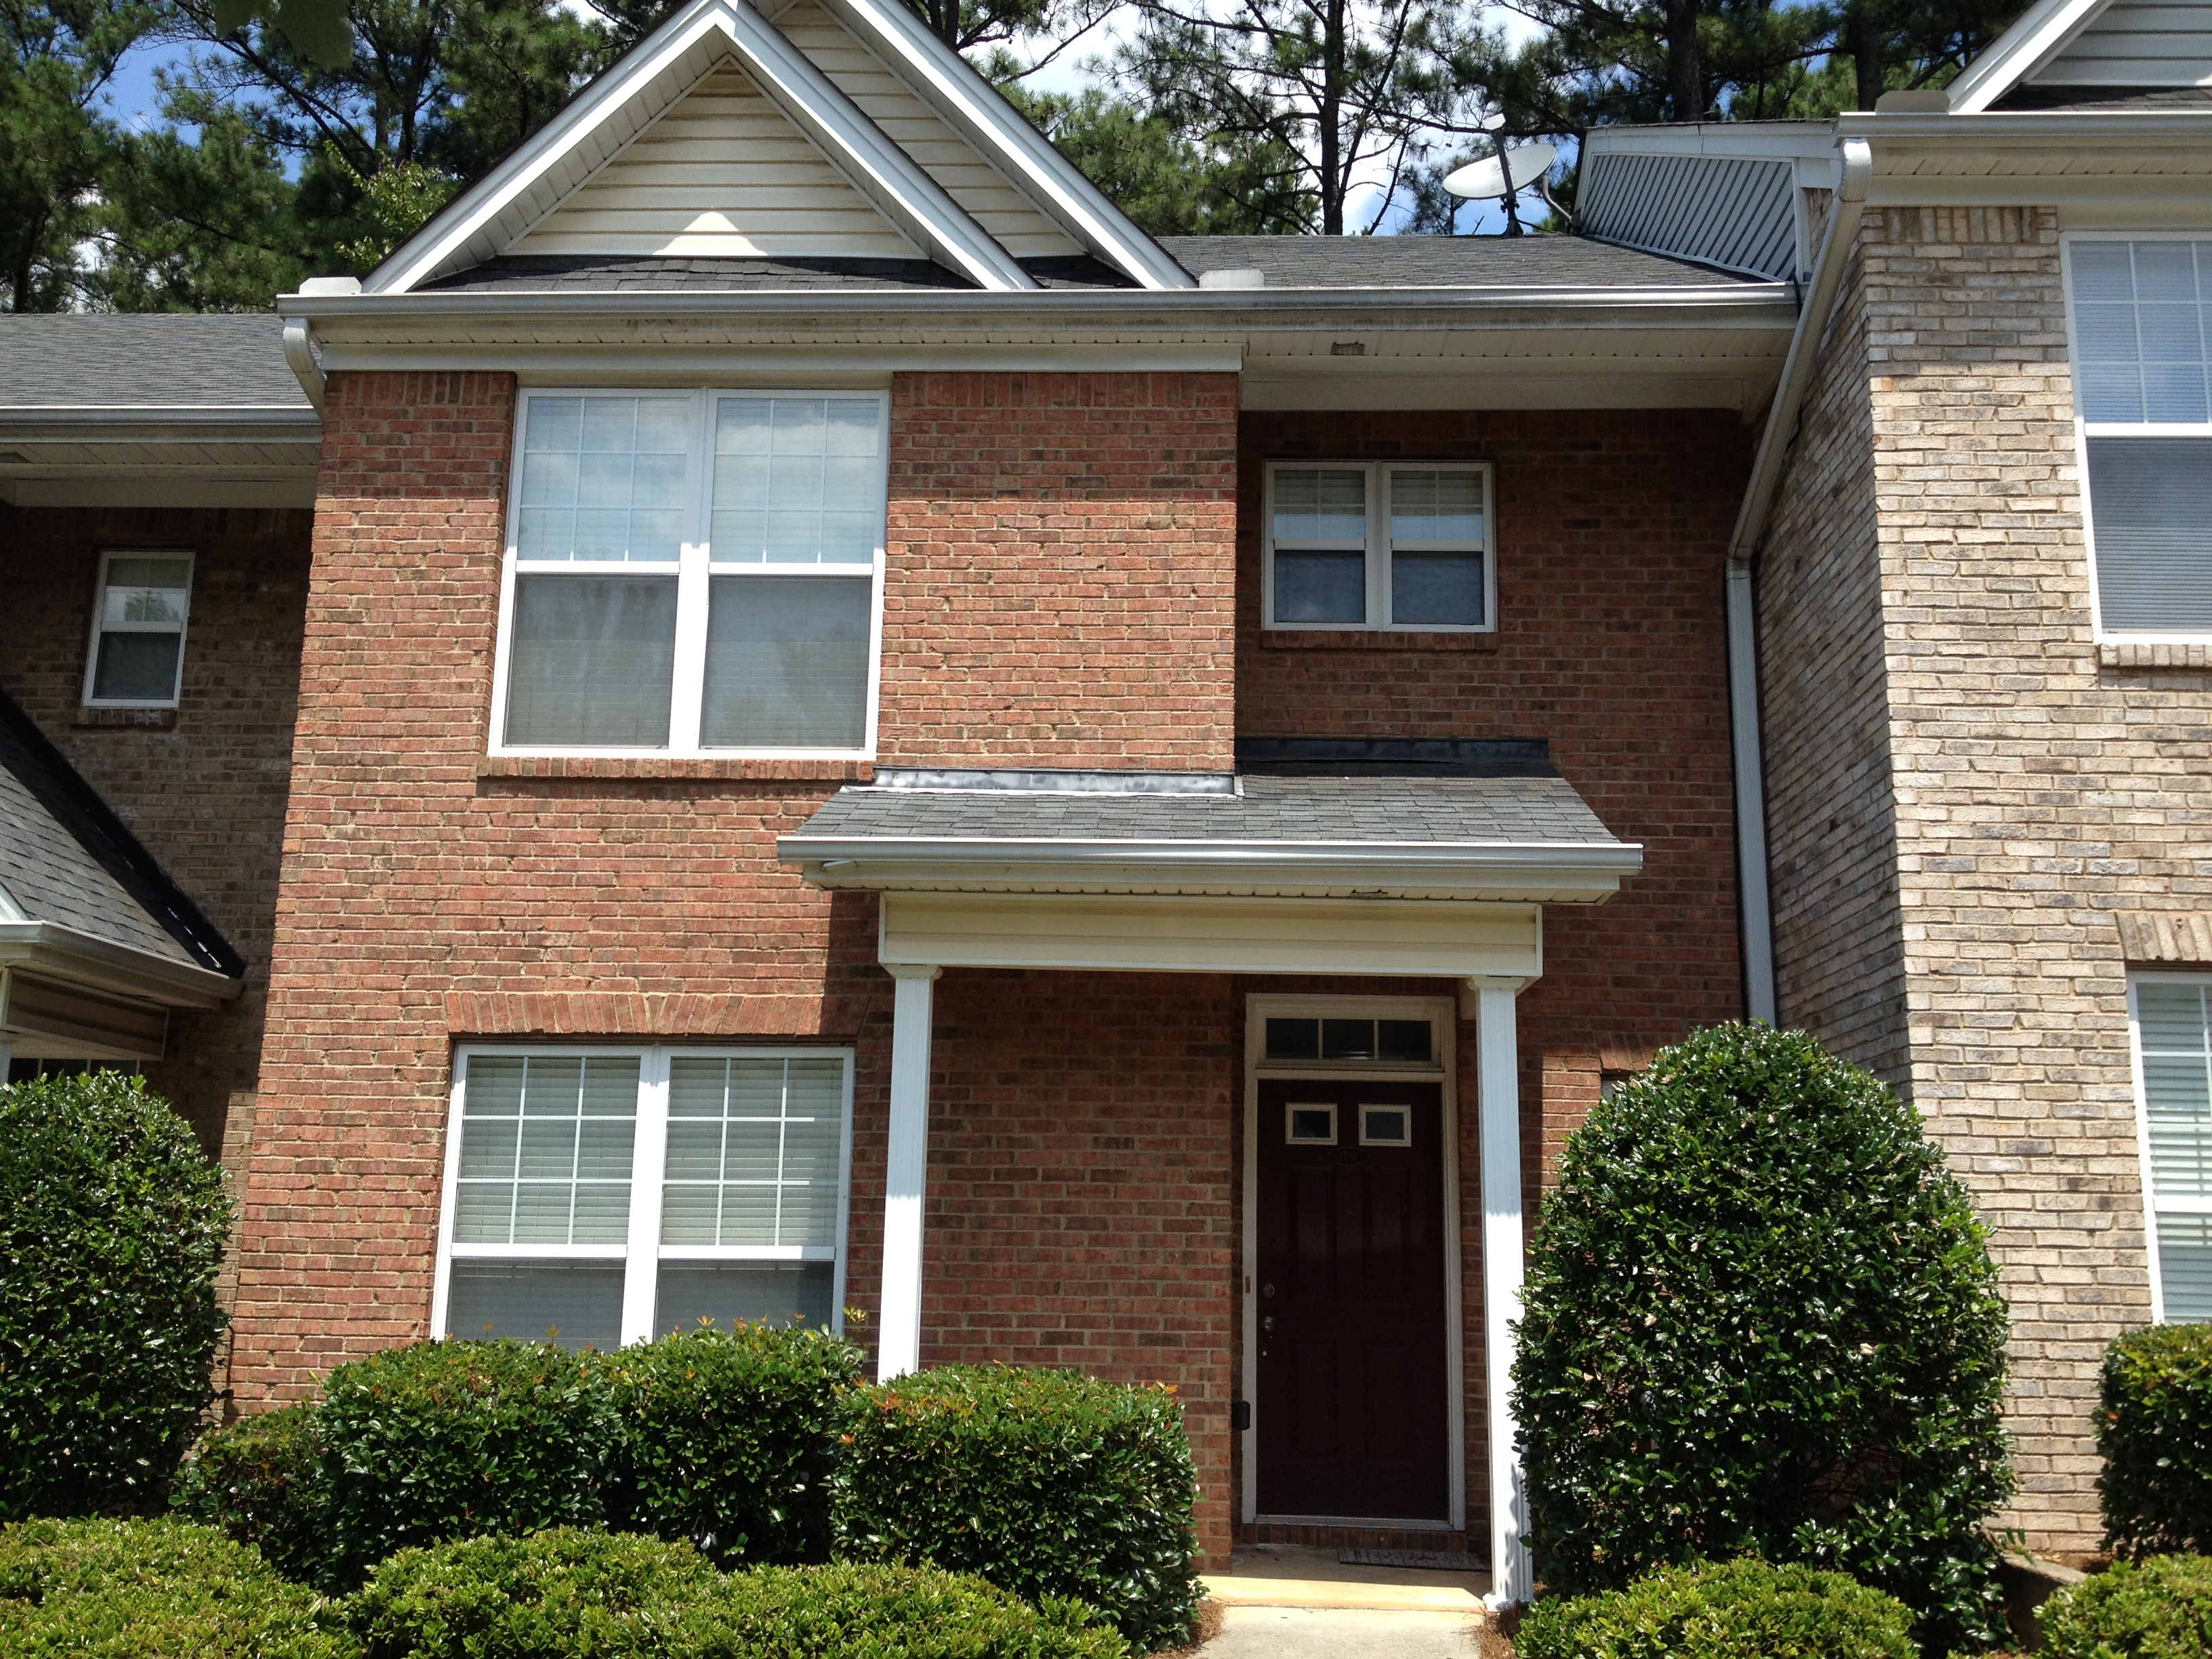 Townhouse for Rent in Decatur